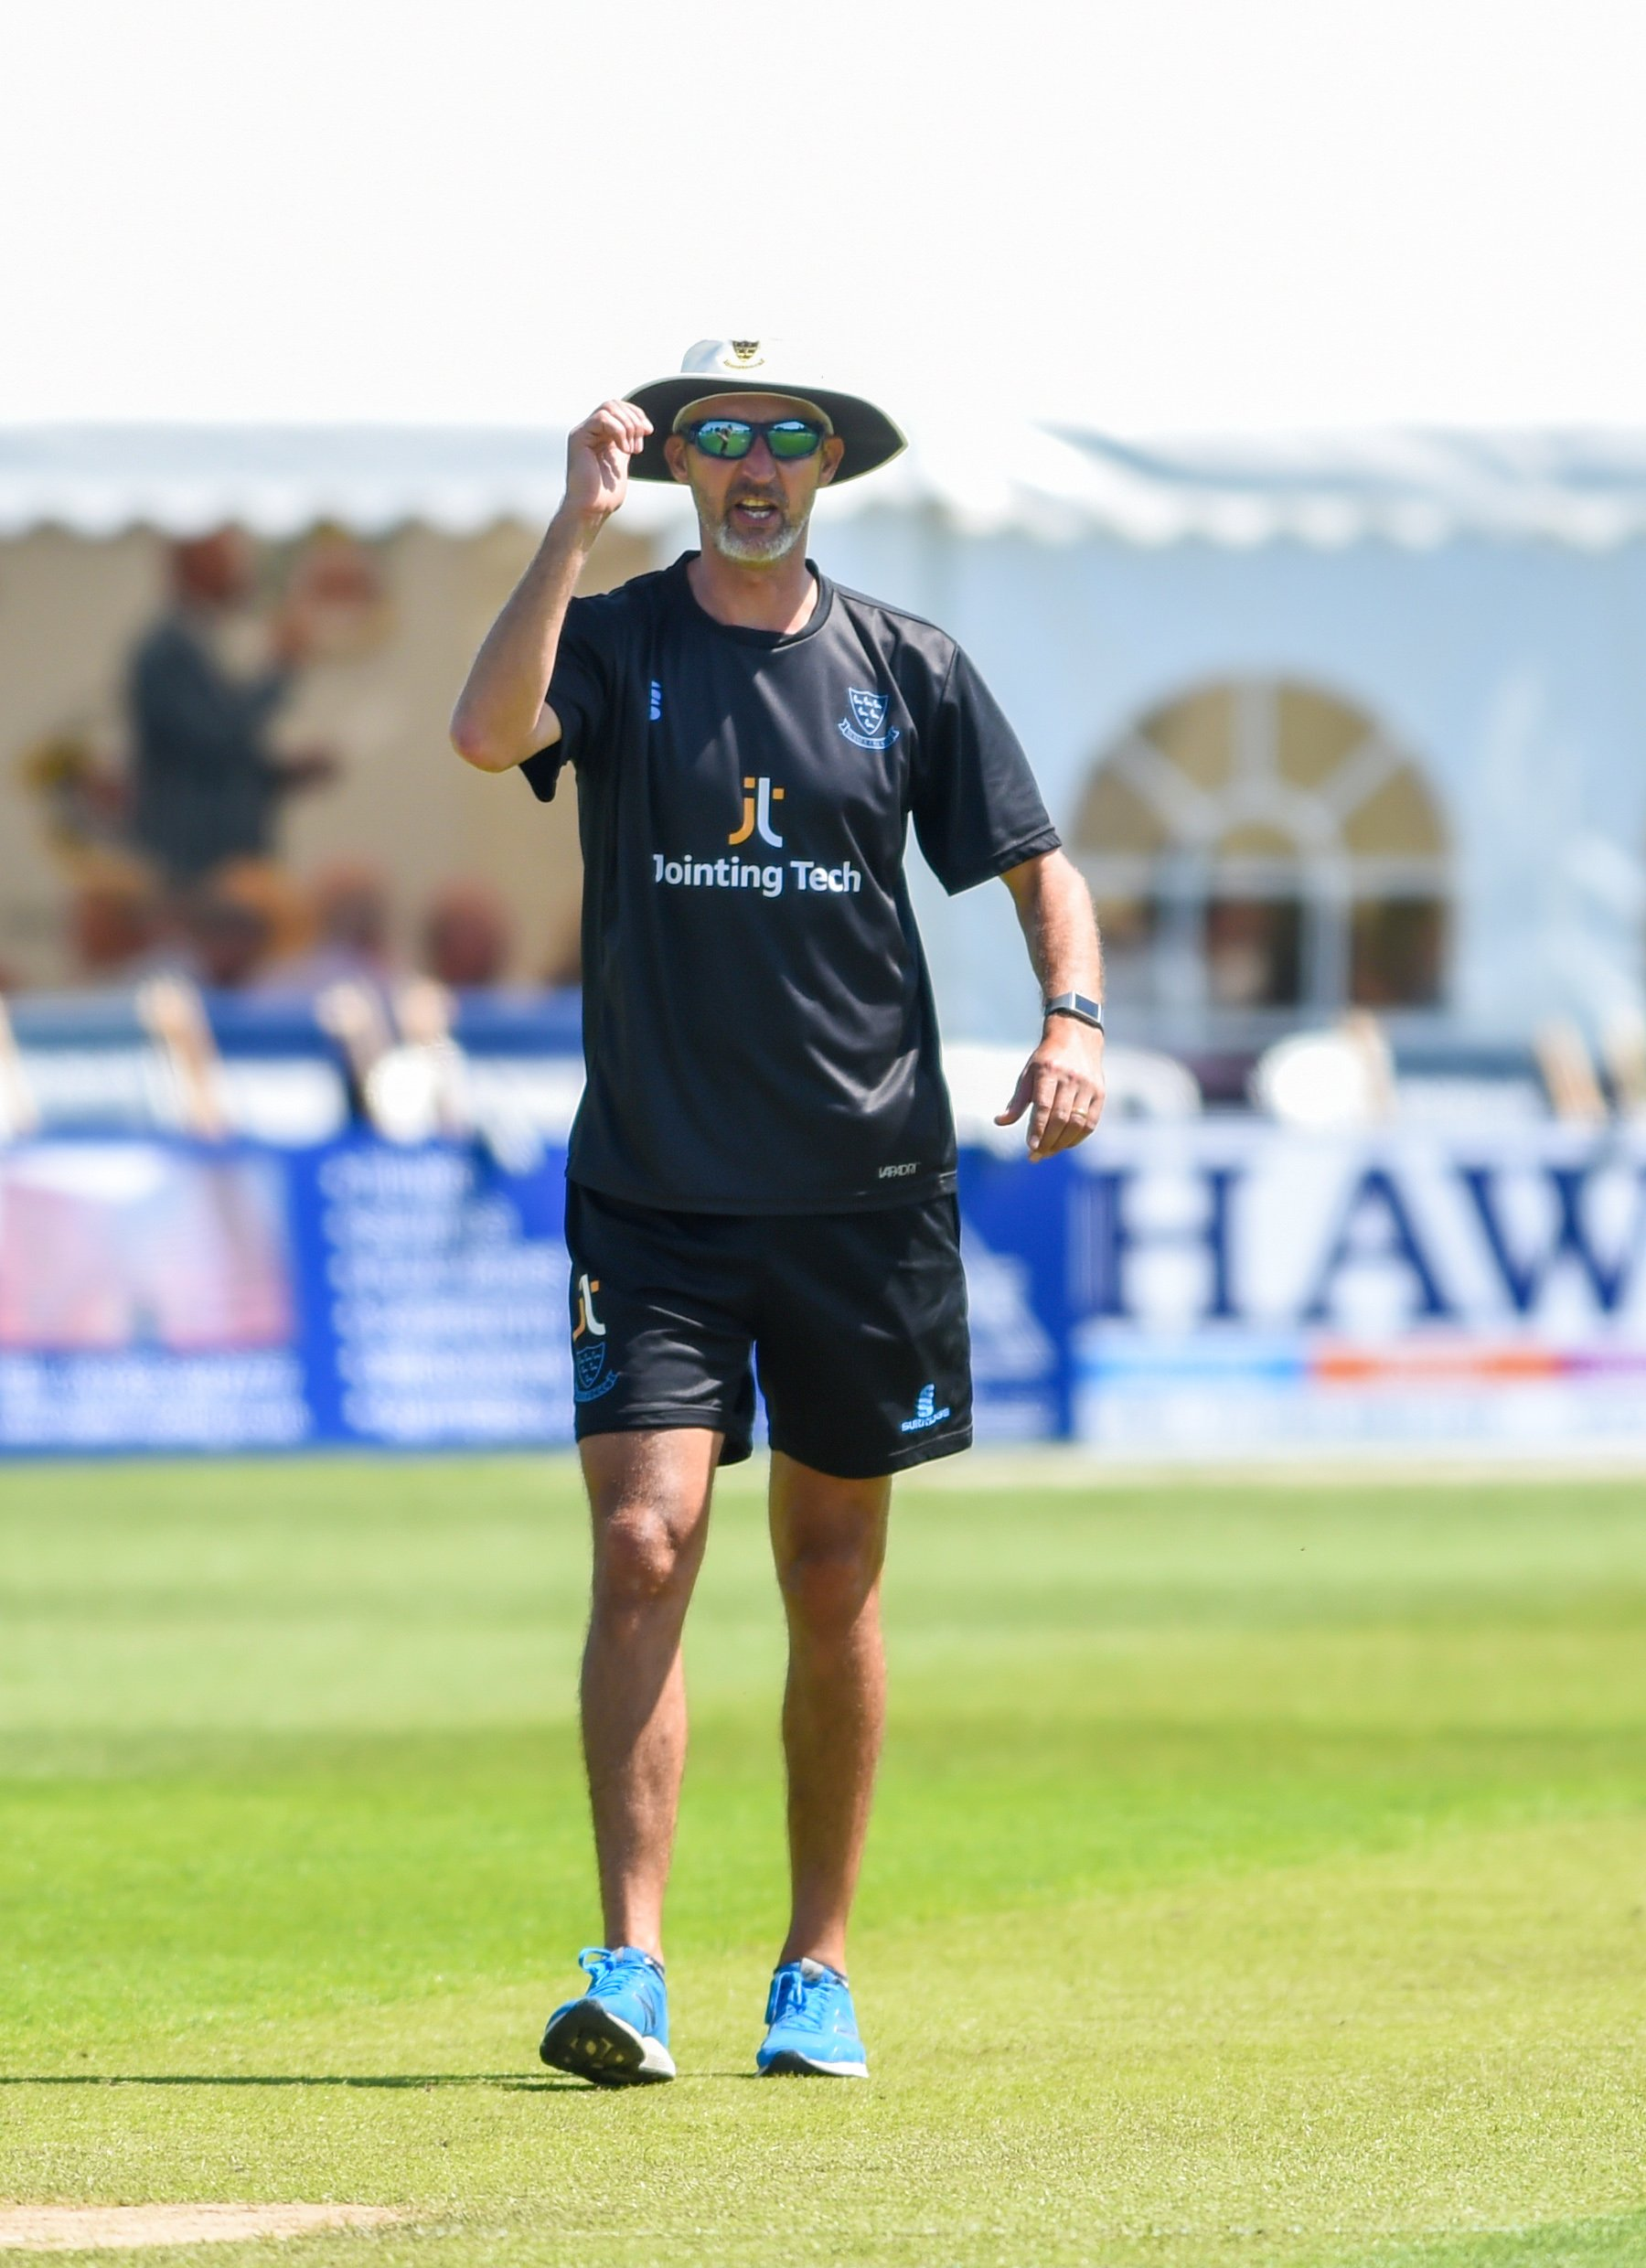 Jason Gillespie says the new addition will add depth to the bowling unit